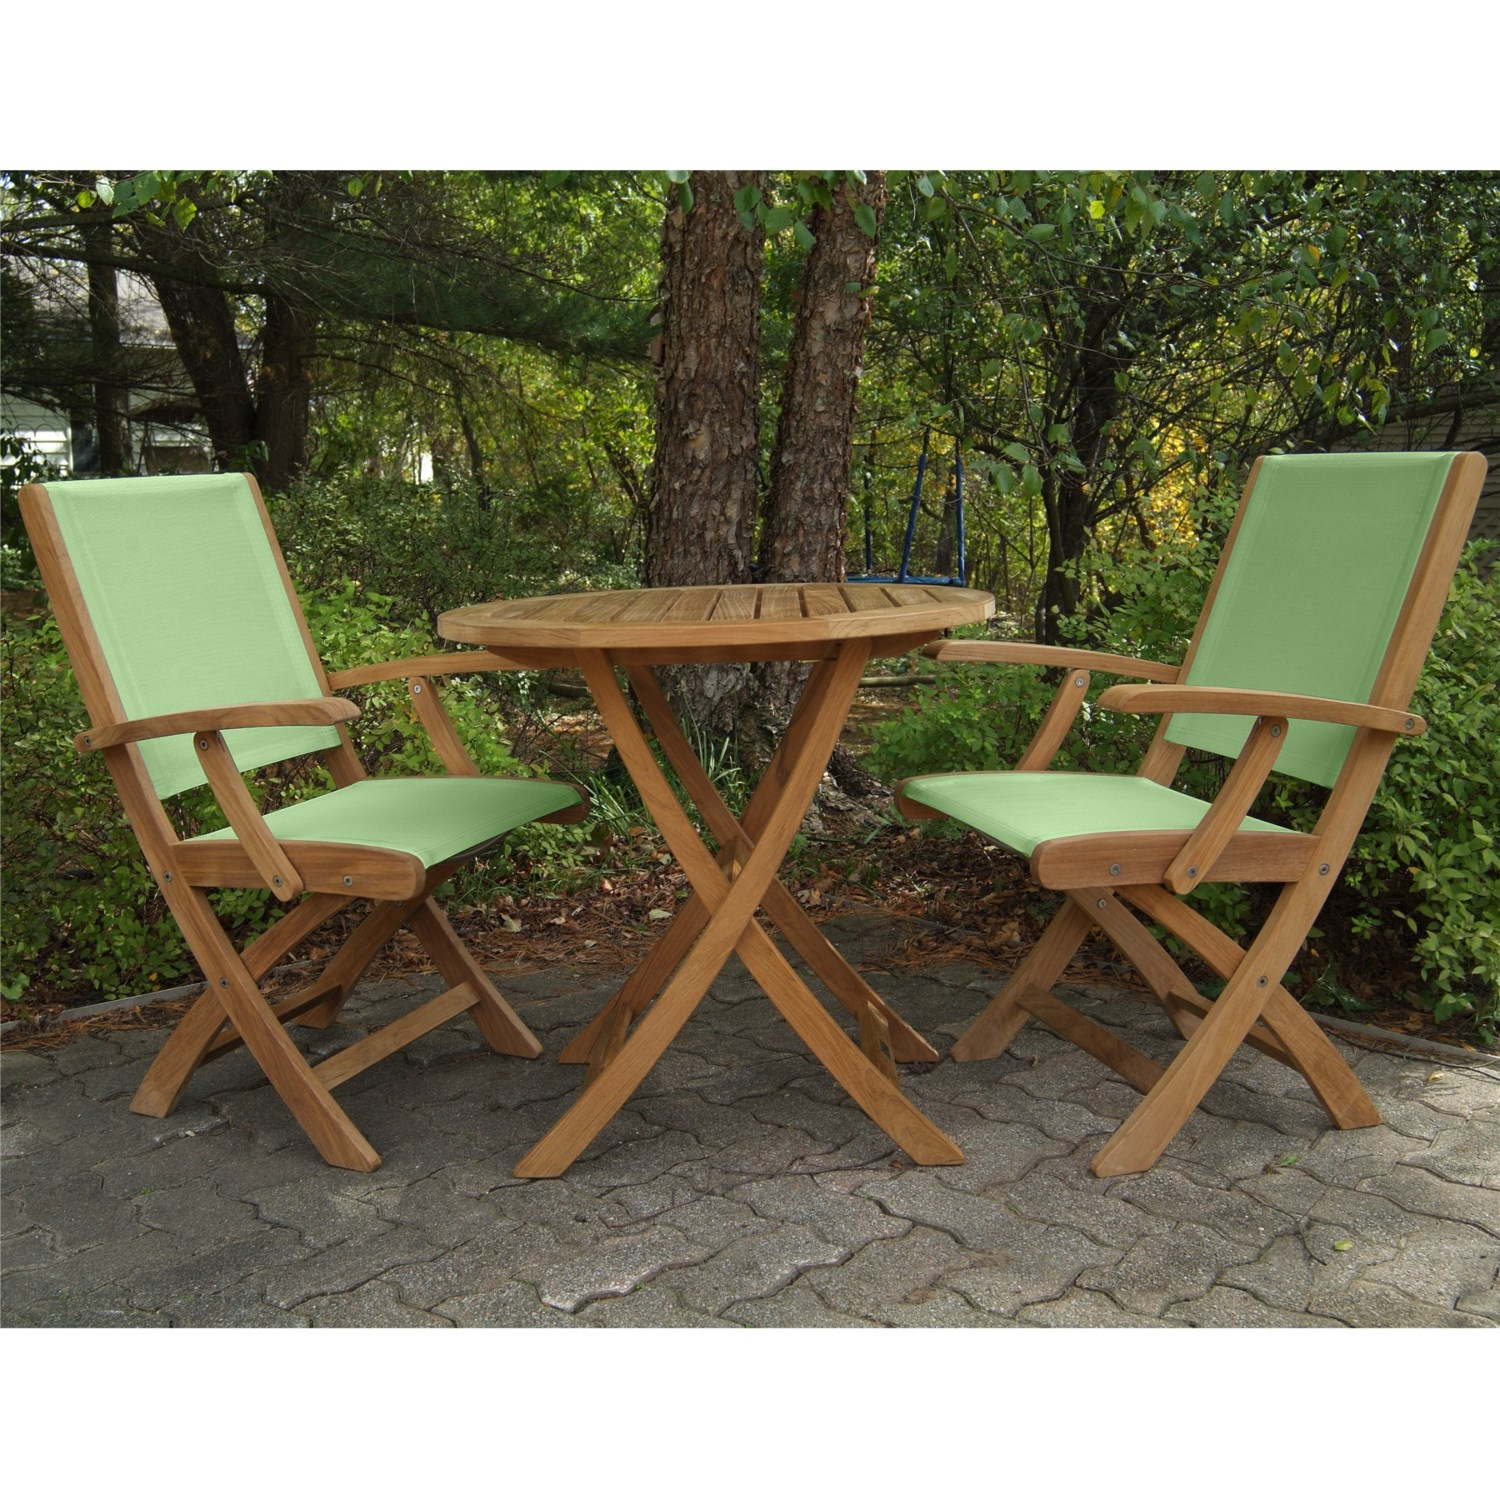 Three Birds Casual Riviera Folding Armchairs and Cambridge Table